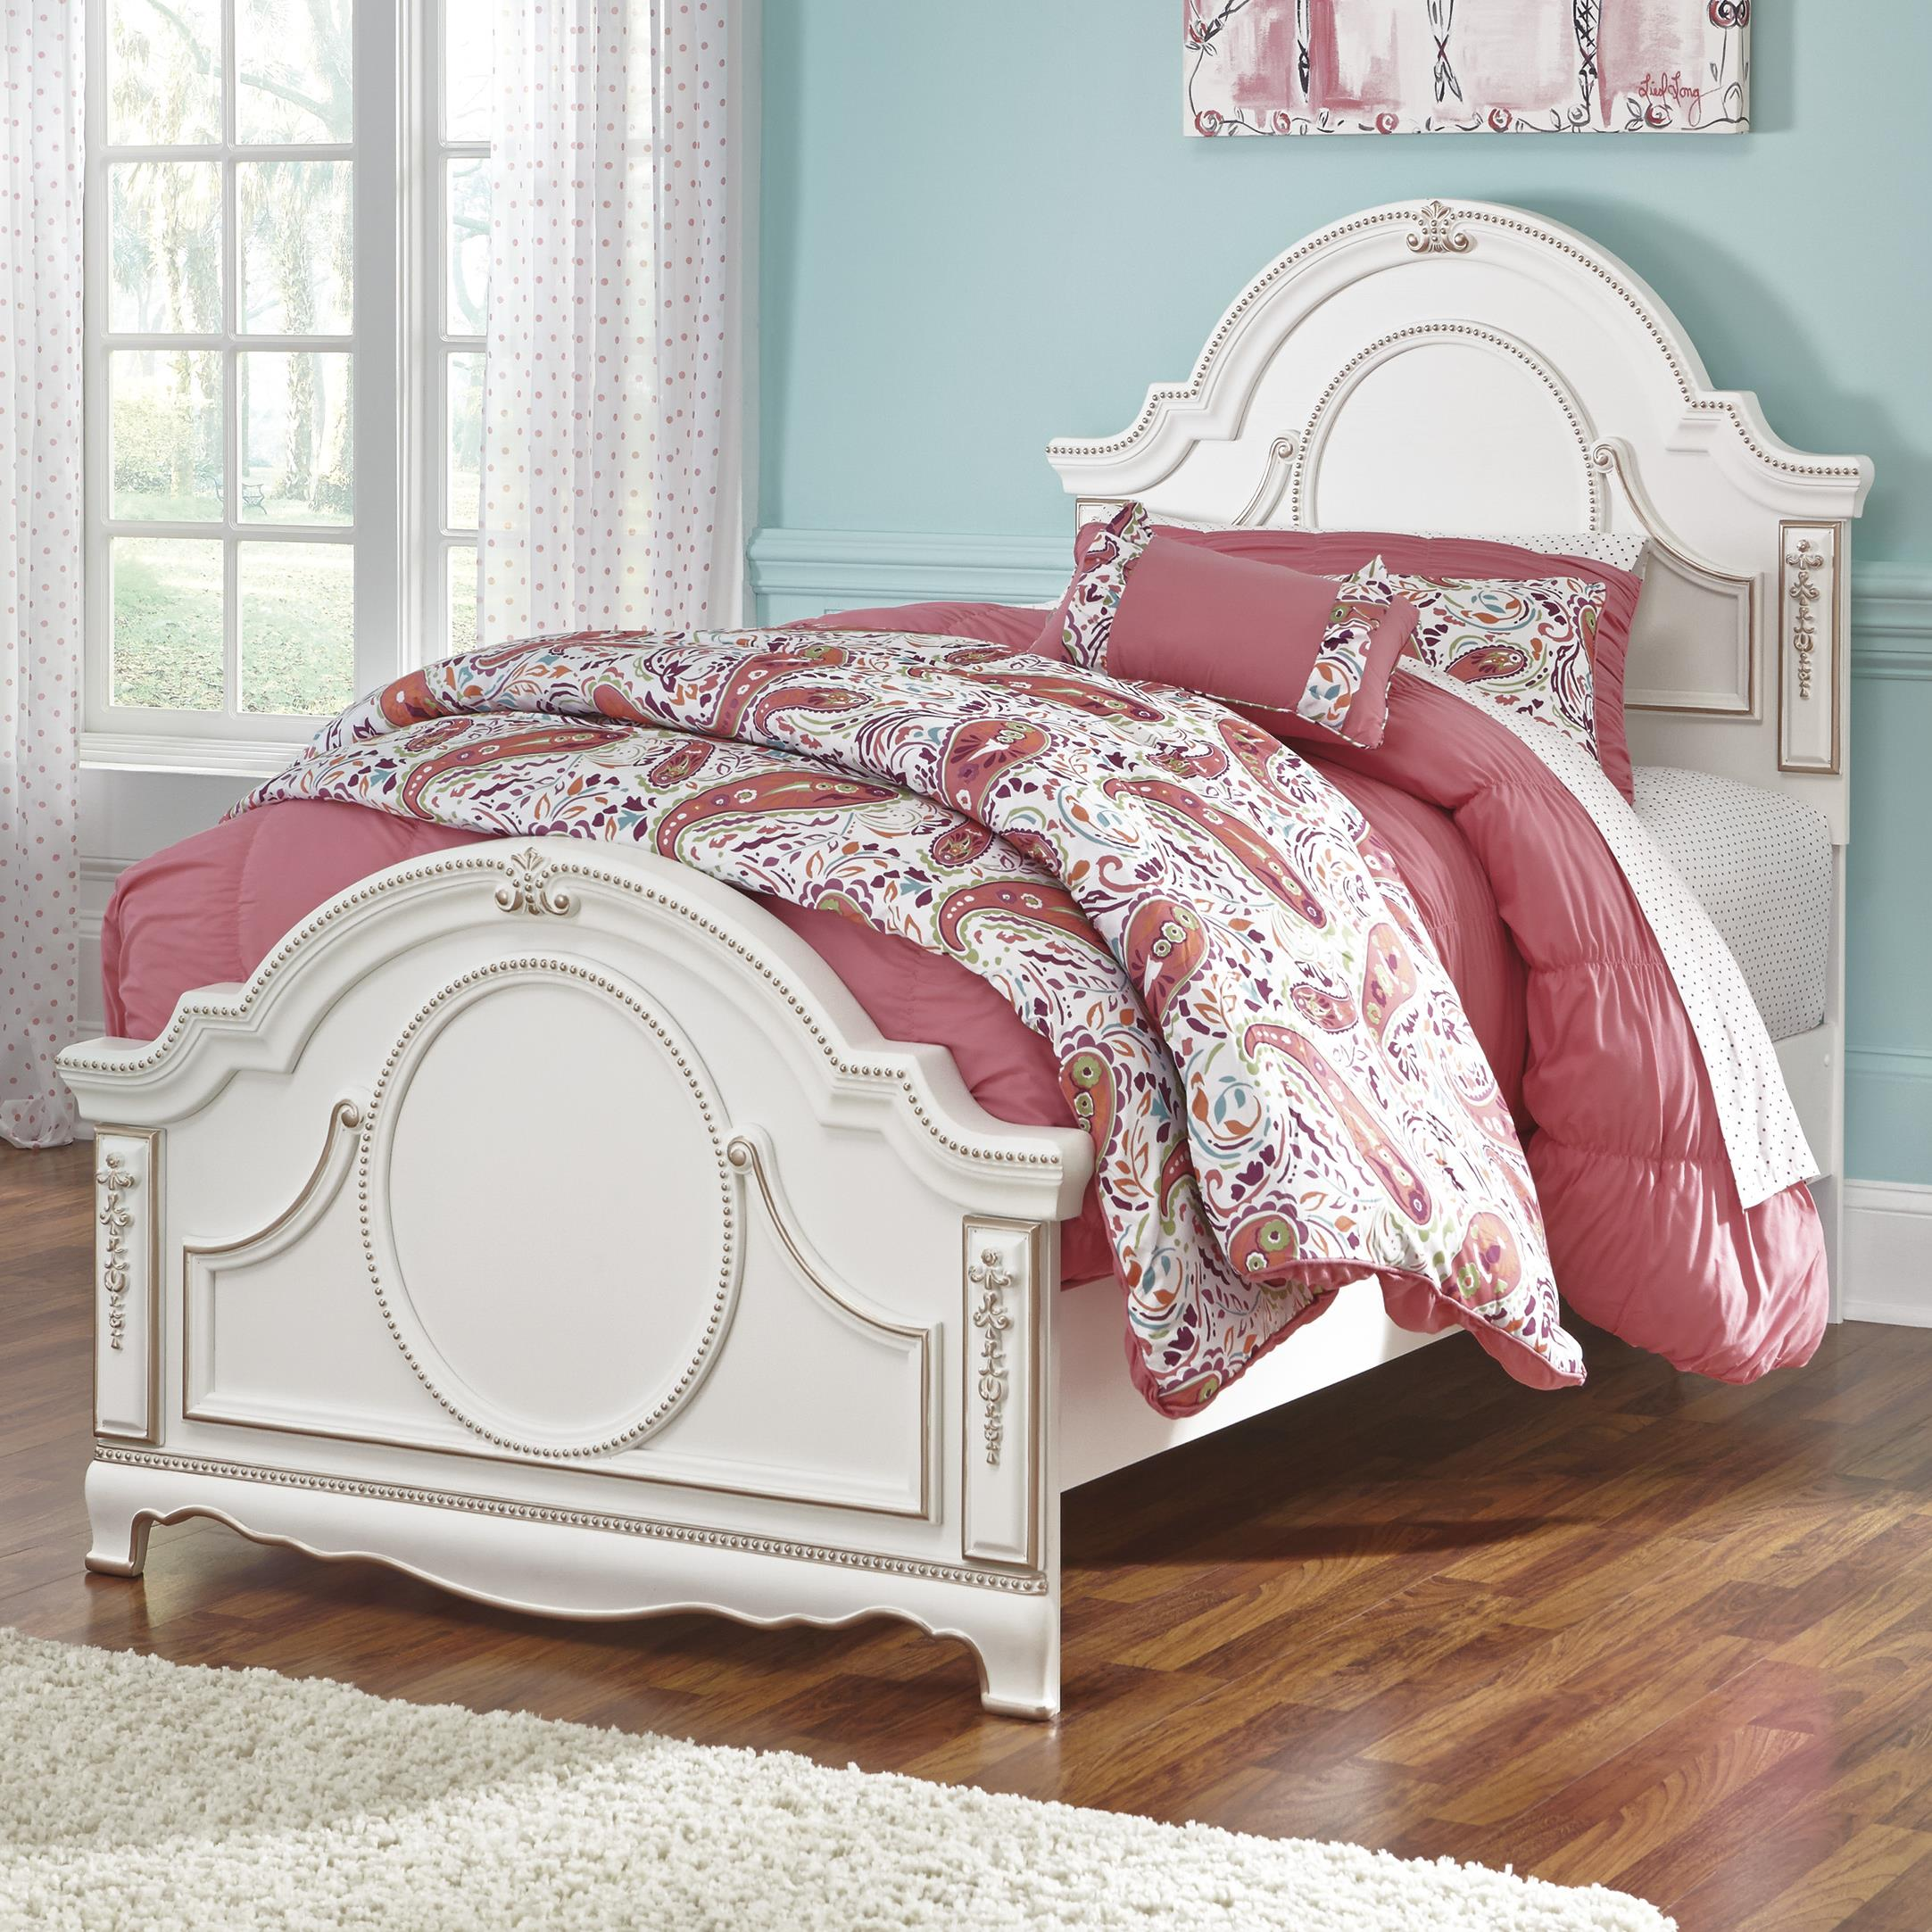 Signature Design by Ashley Korabella Twin Panel Bed - Item Number: B355-53+52+83